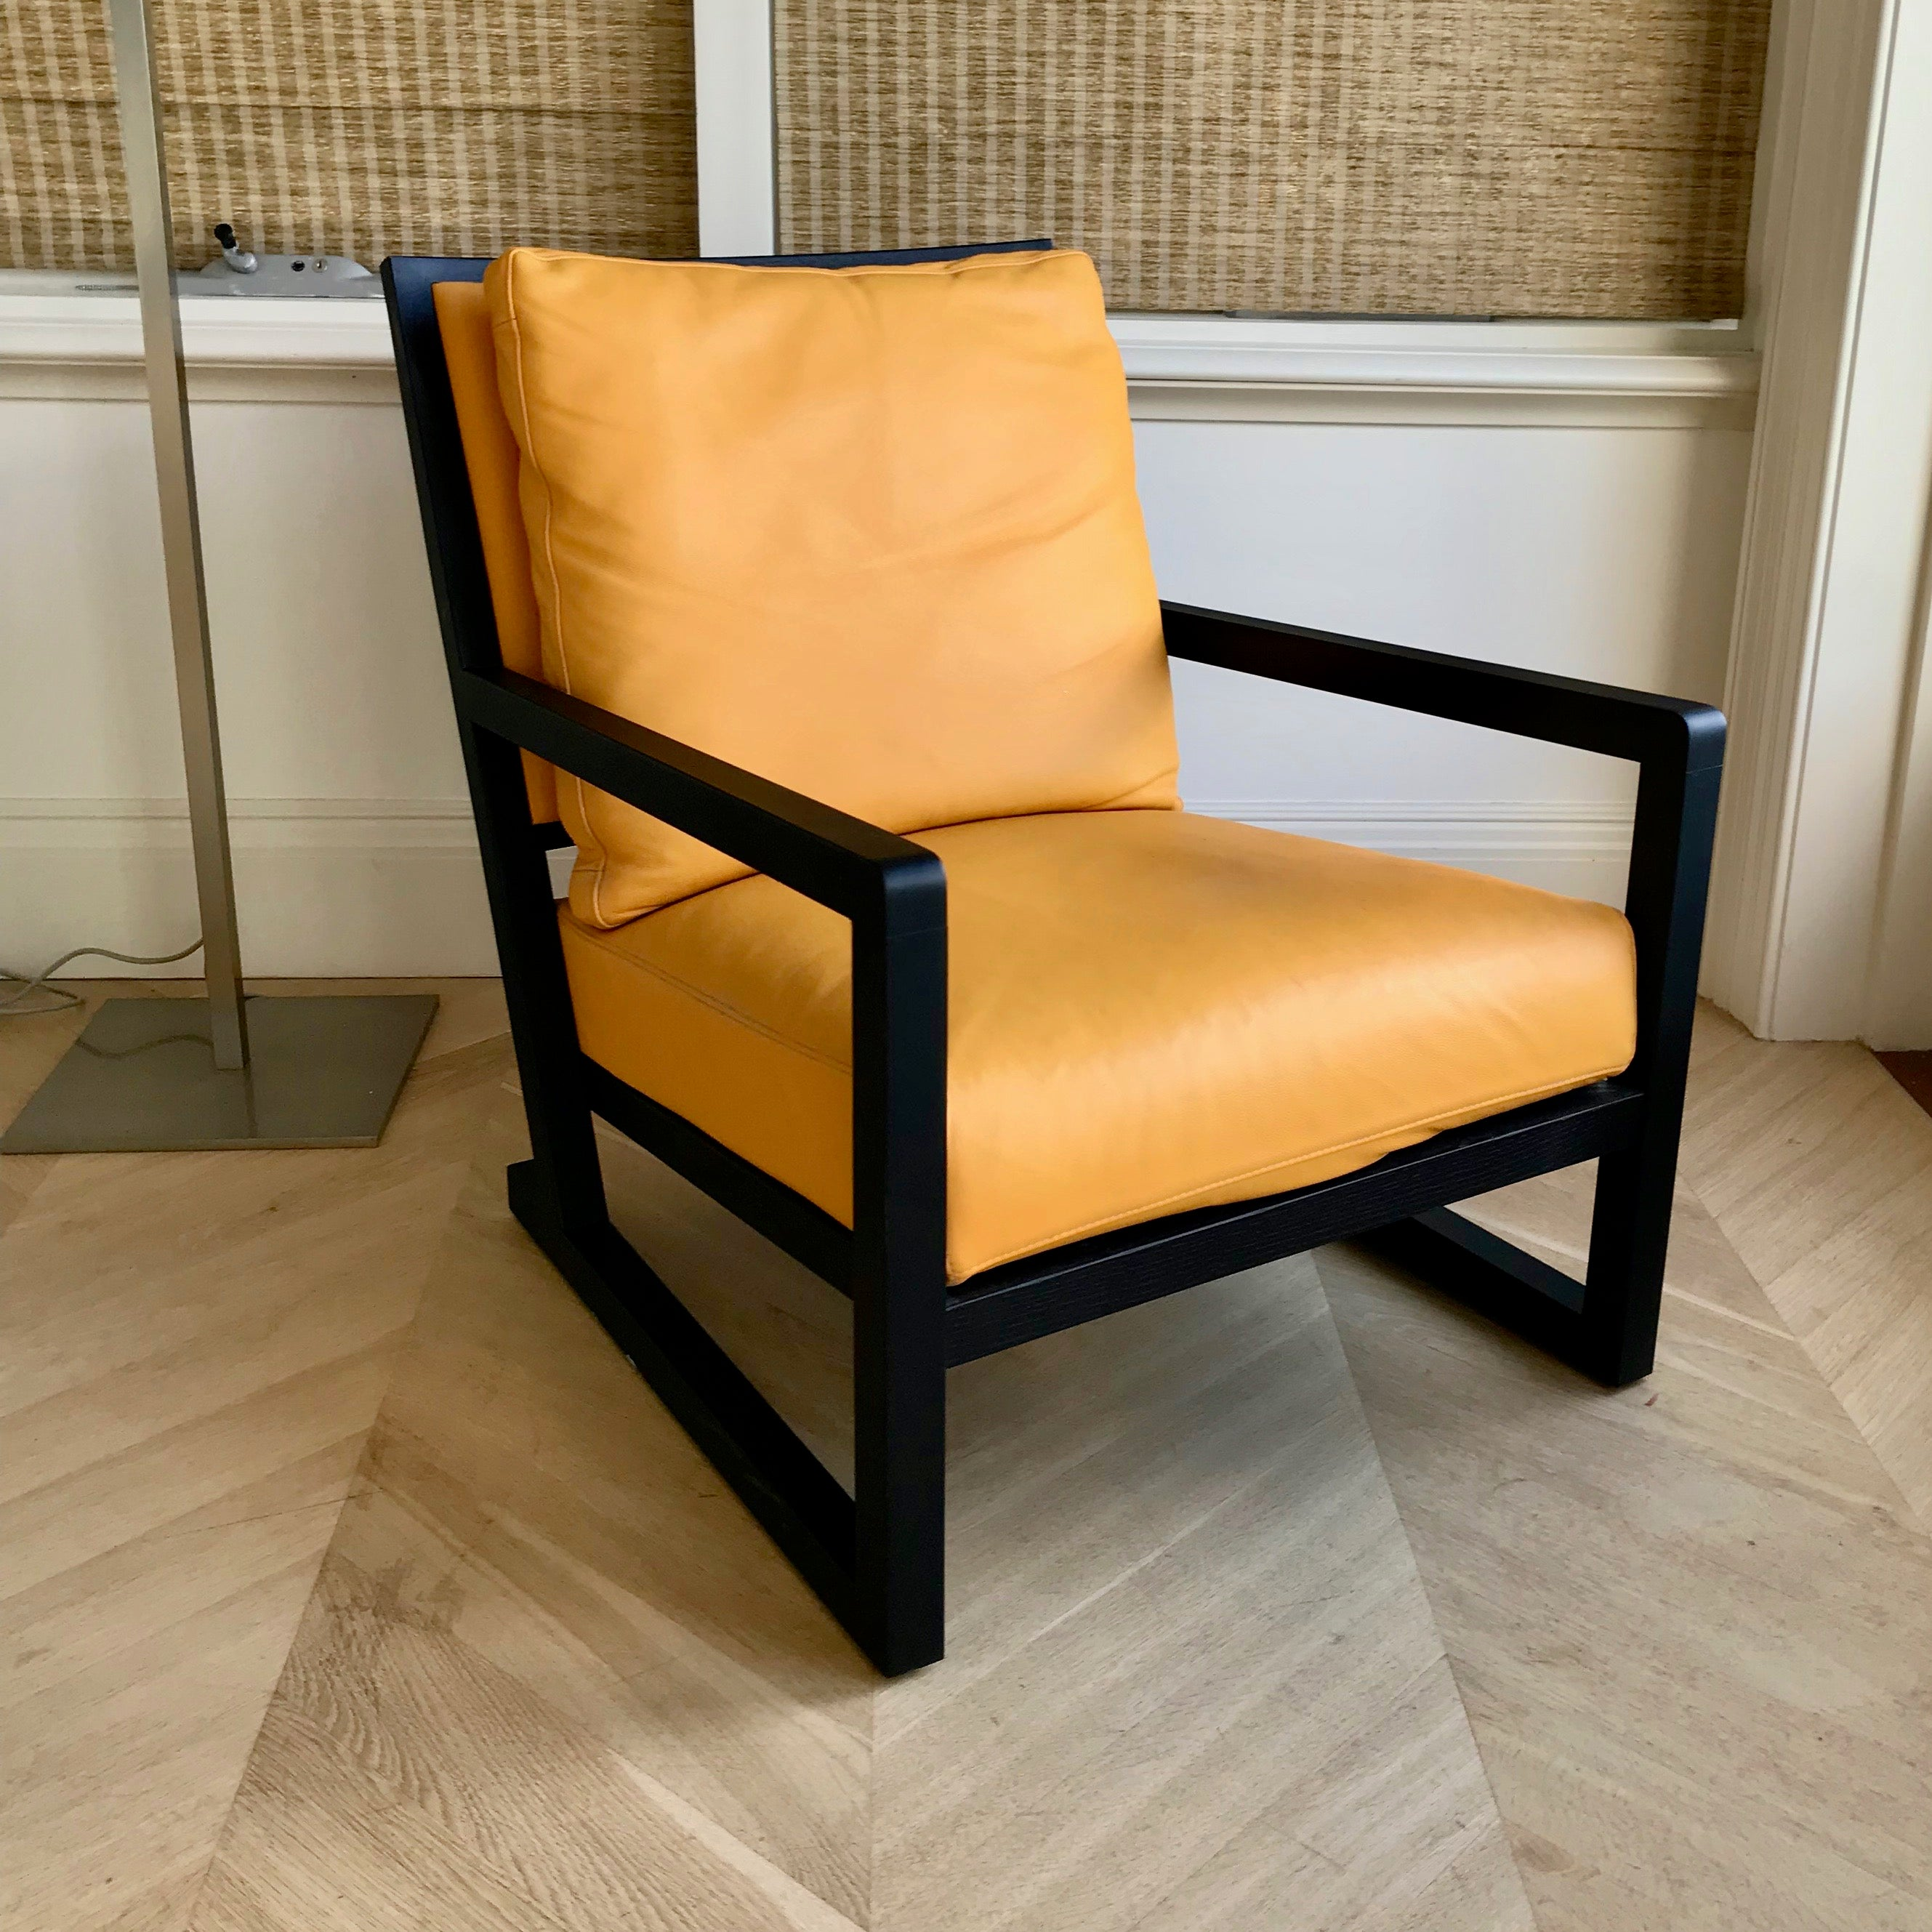 Simon Lounge Chair by Camerich (2 available)